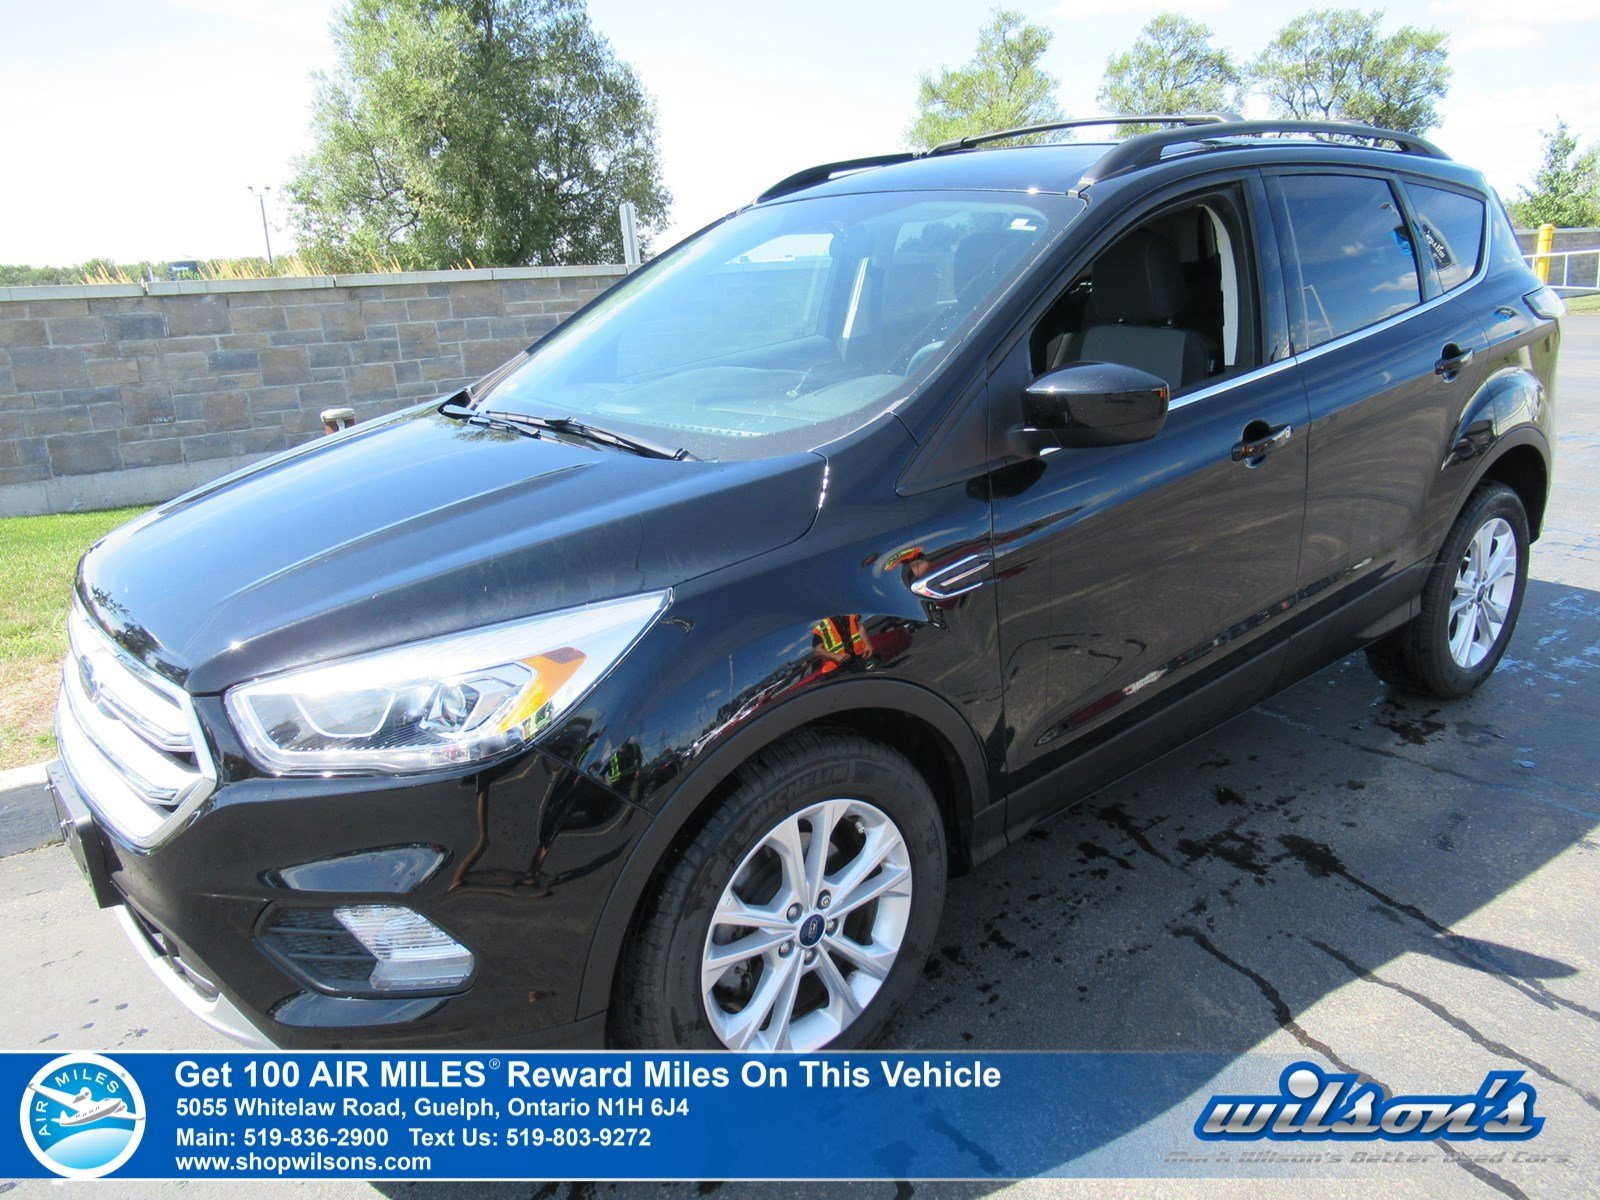 Certified Pre-Owned 2017 Ford Escape SE - Low KM!! Navigation, Rear Camera, Bluetooth, Heated Power Seat and more!